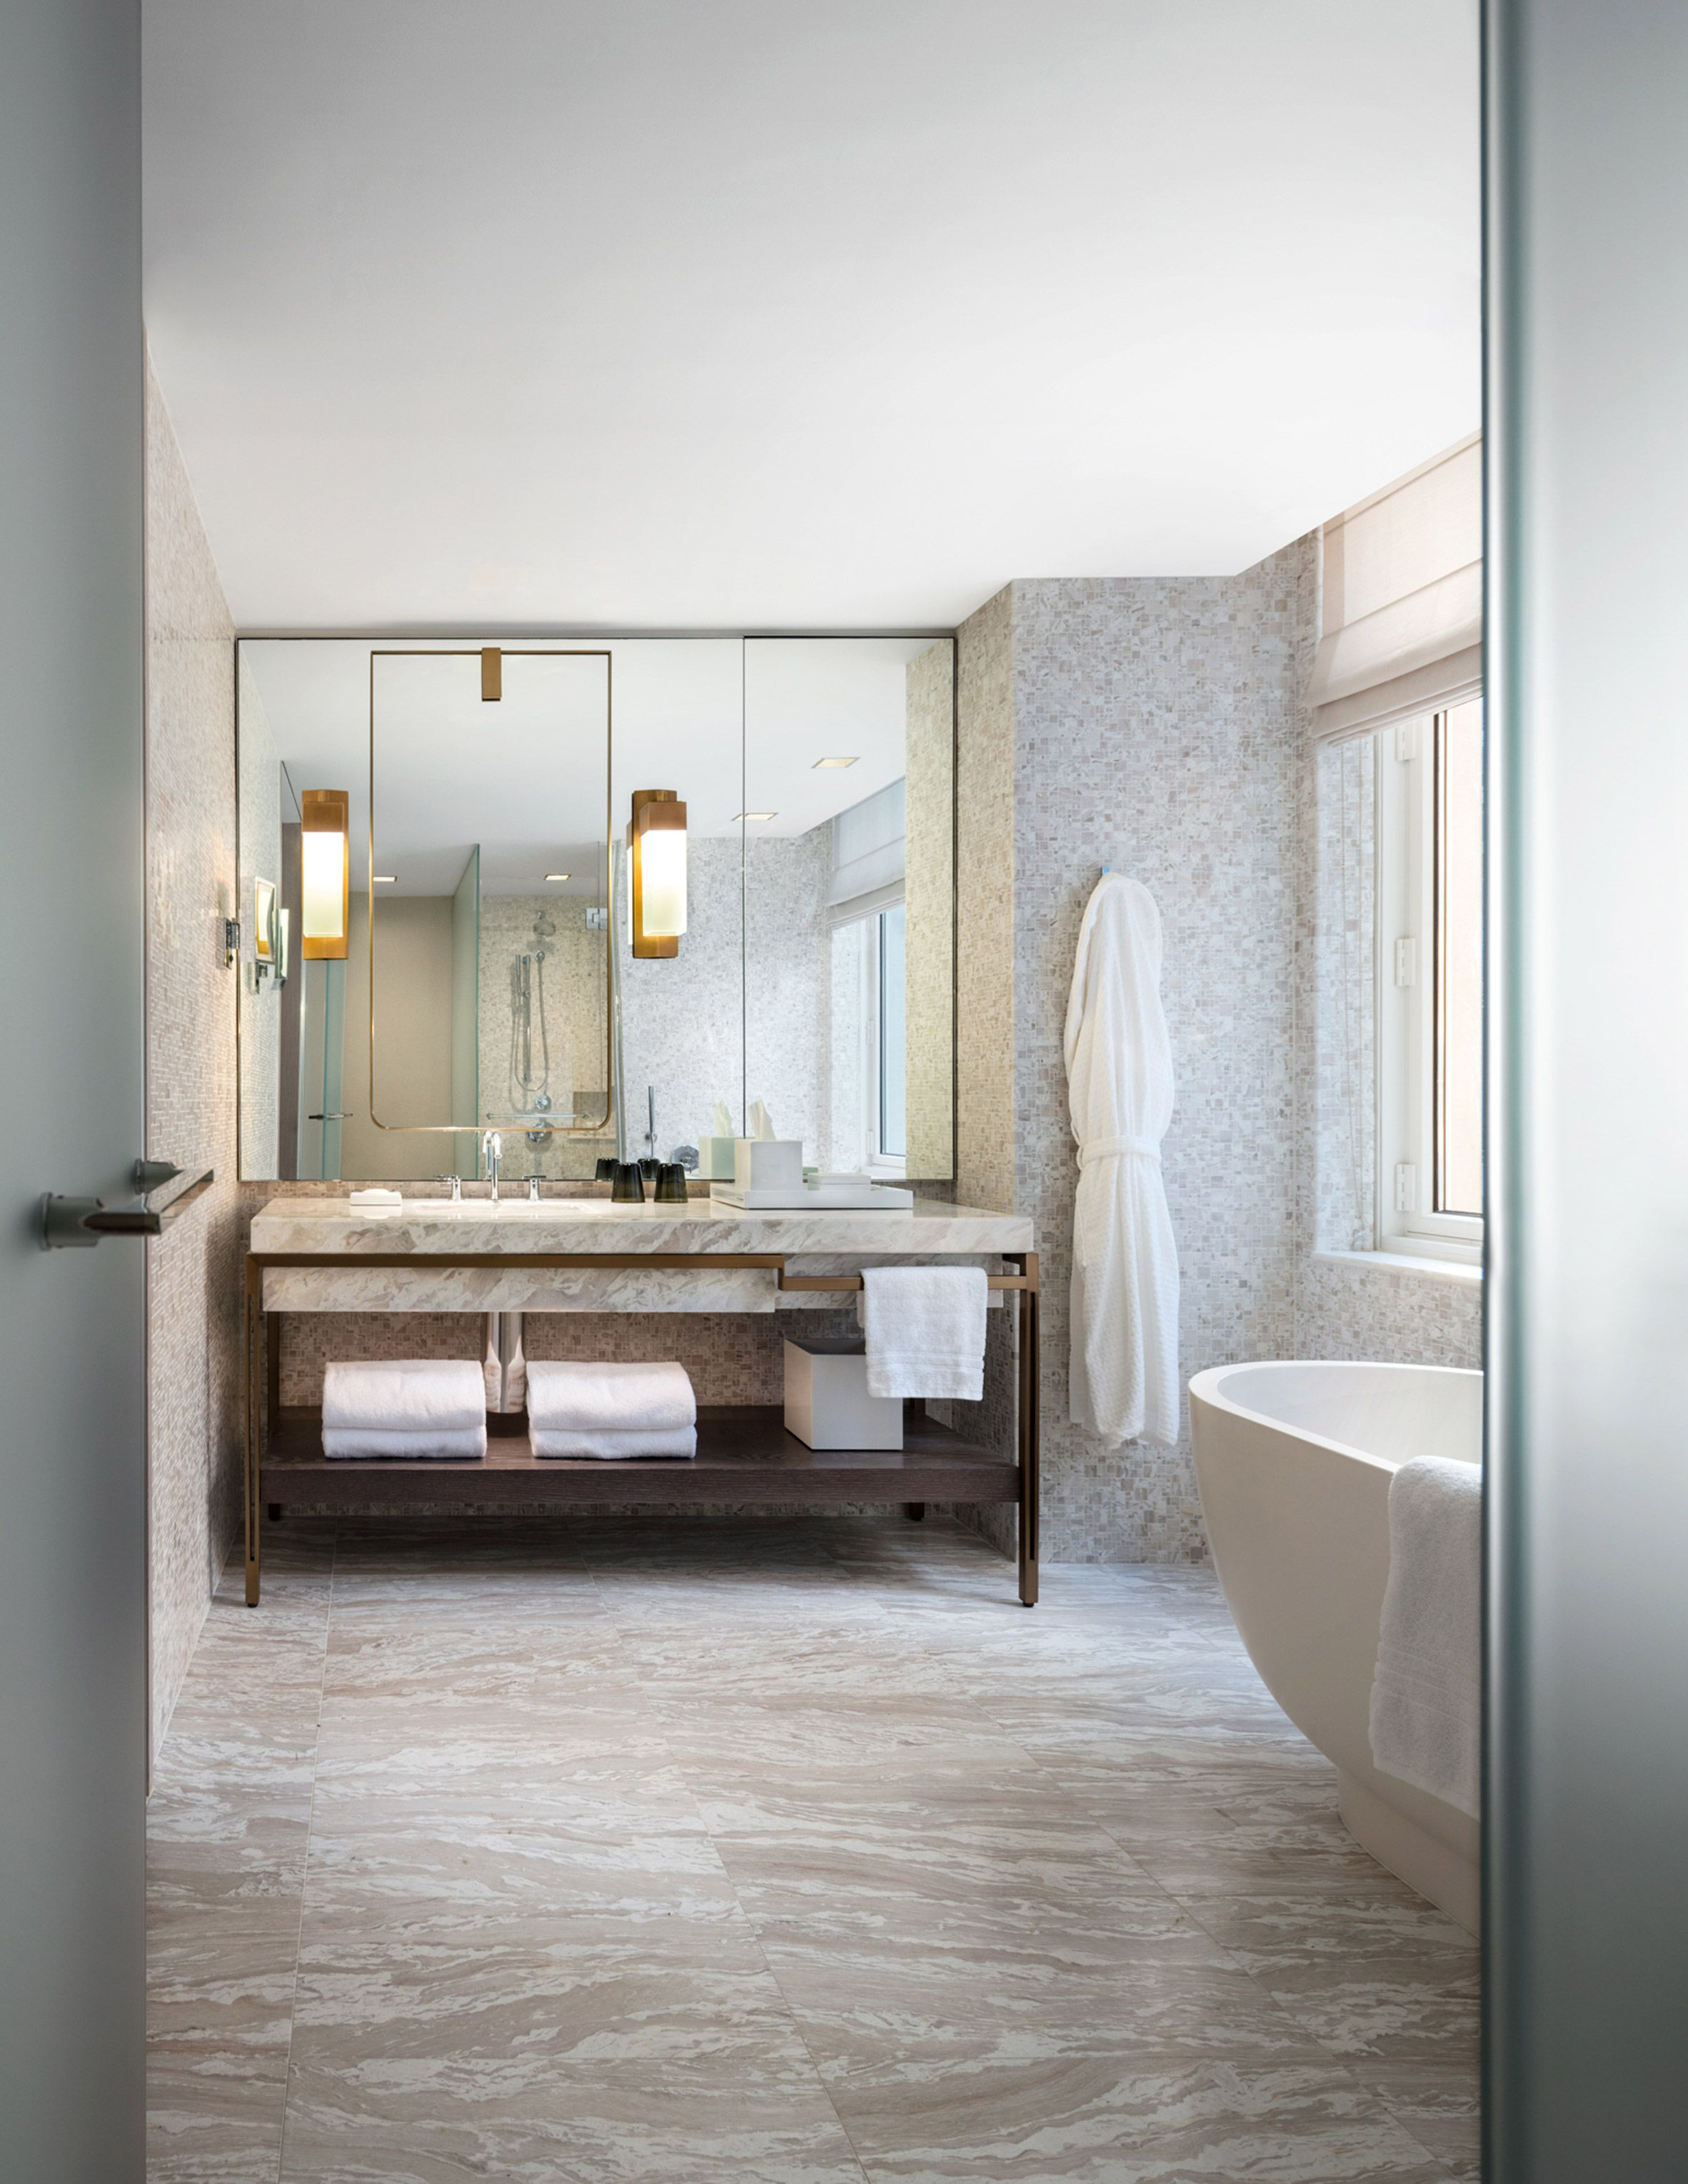 10 Steps To A Luxury Hotel Style Bathroom  Bathroom Designs New Hotel Bathroom Design Design Ideas